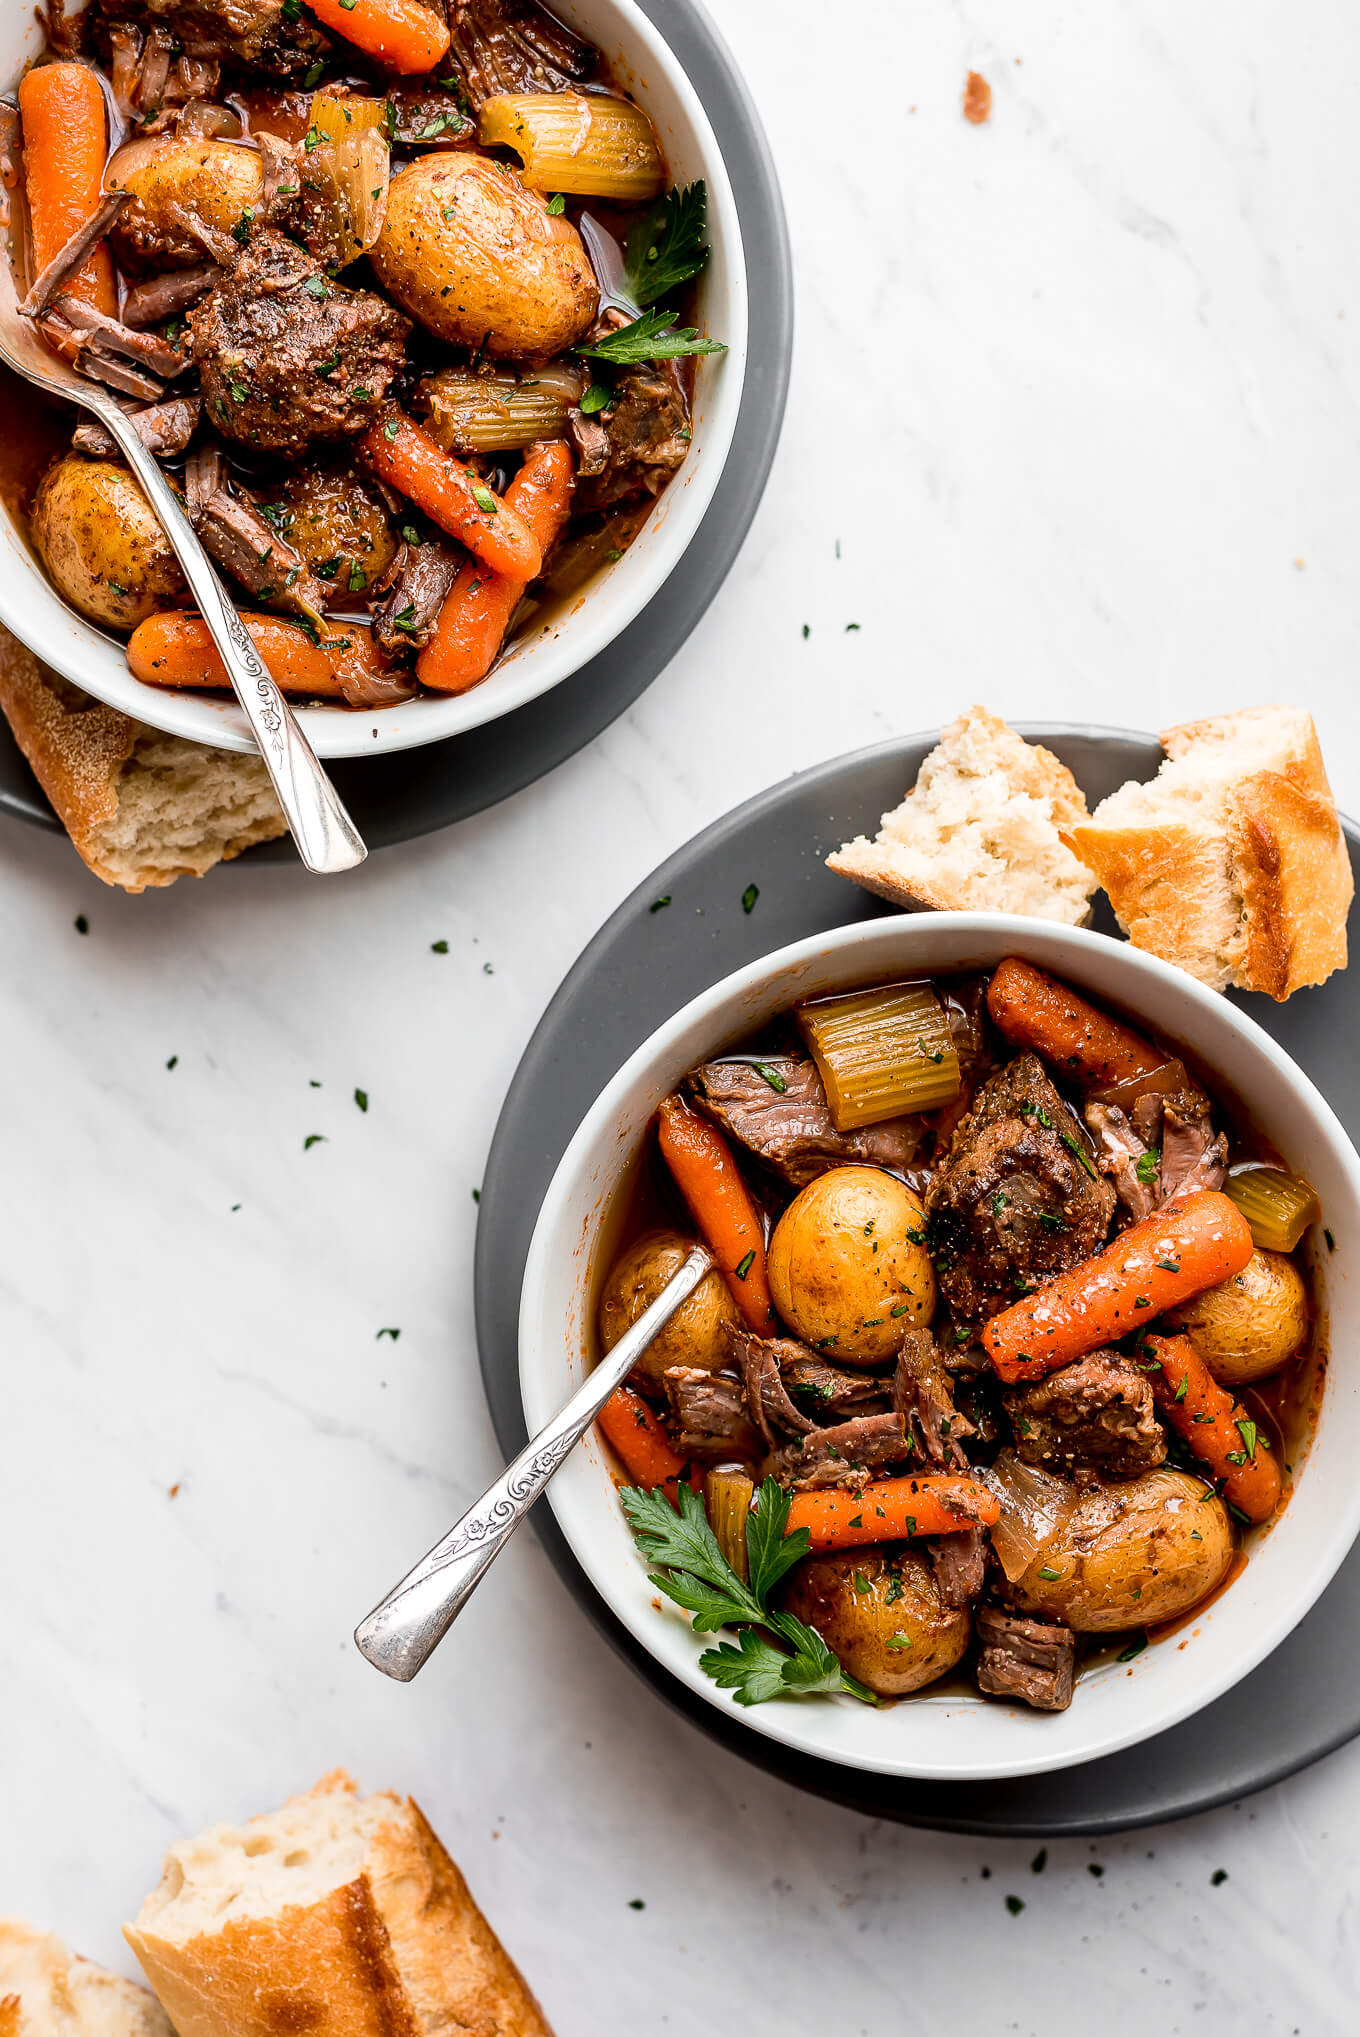 Two bowls of the best beef stew on plates with french bread at the side.